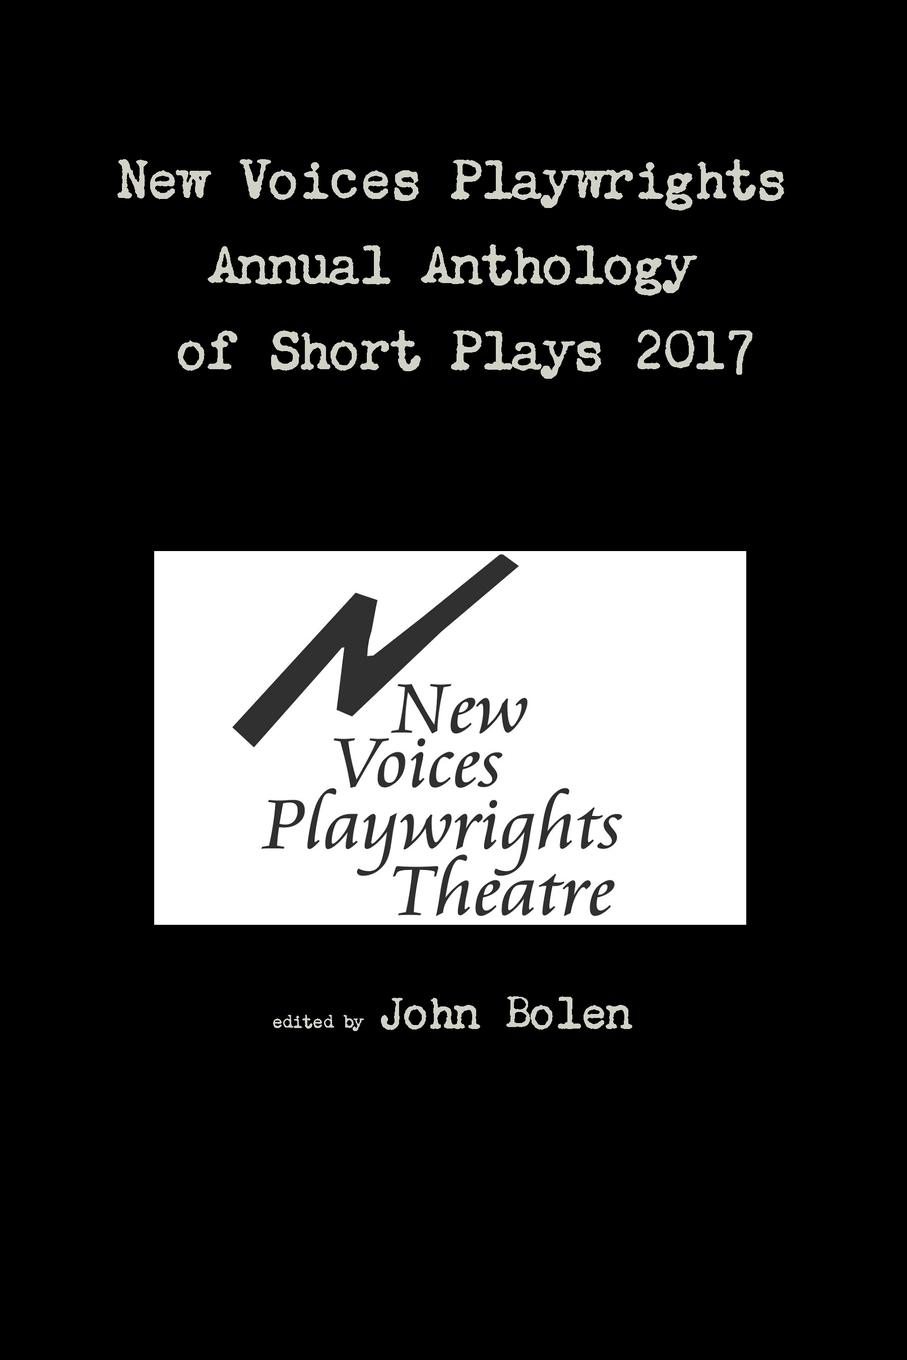 John Bolen New Voices Playwrights Annual Anthology of Short Plays 2017 plays